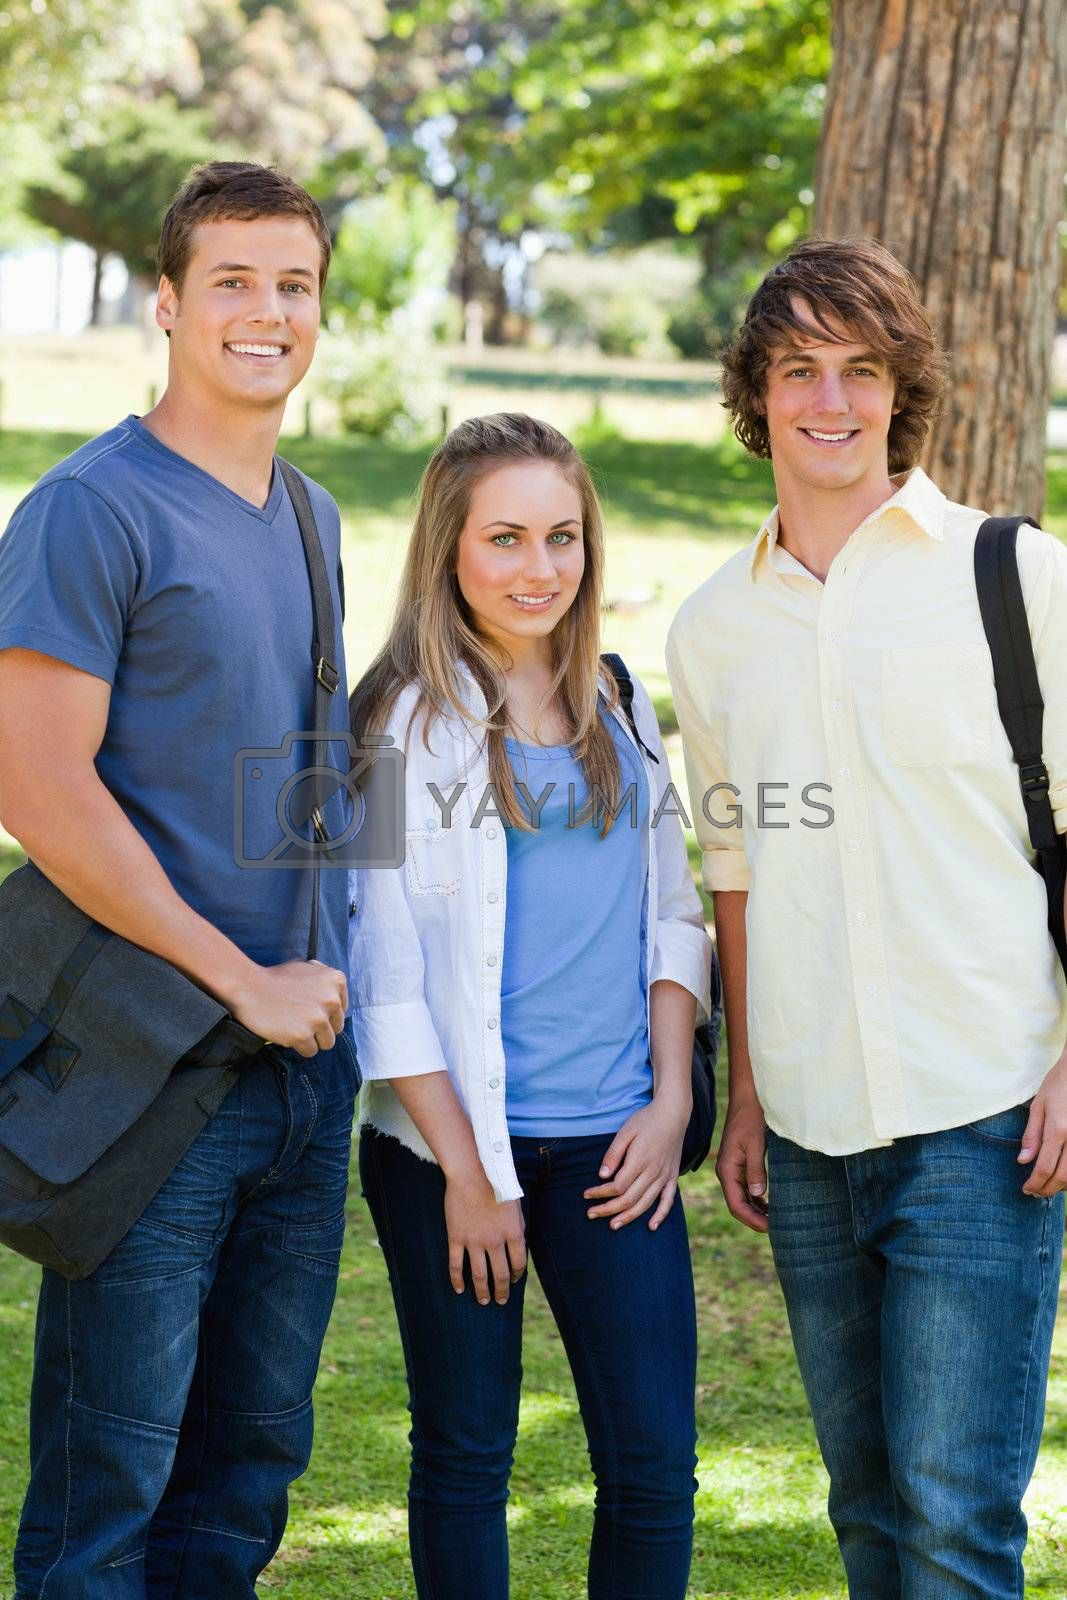 Smiling students with their bags posing in a park